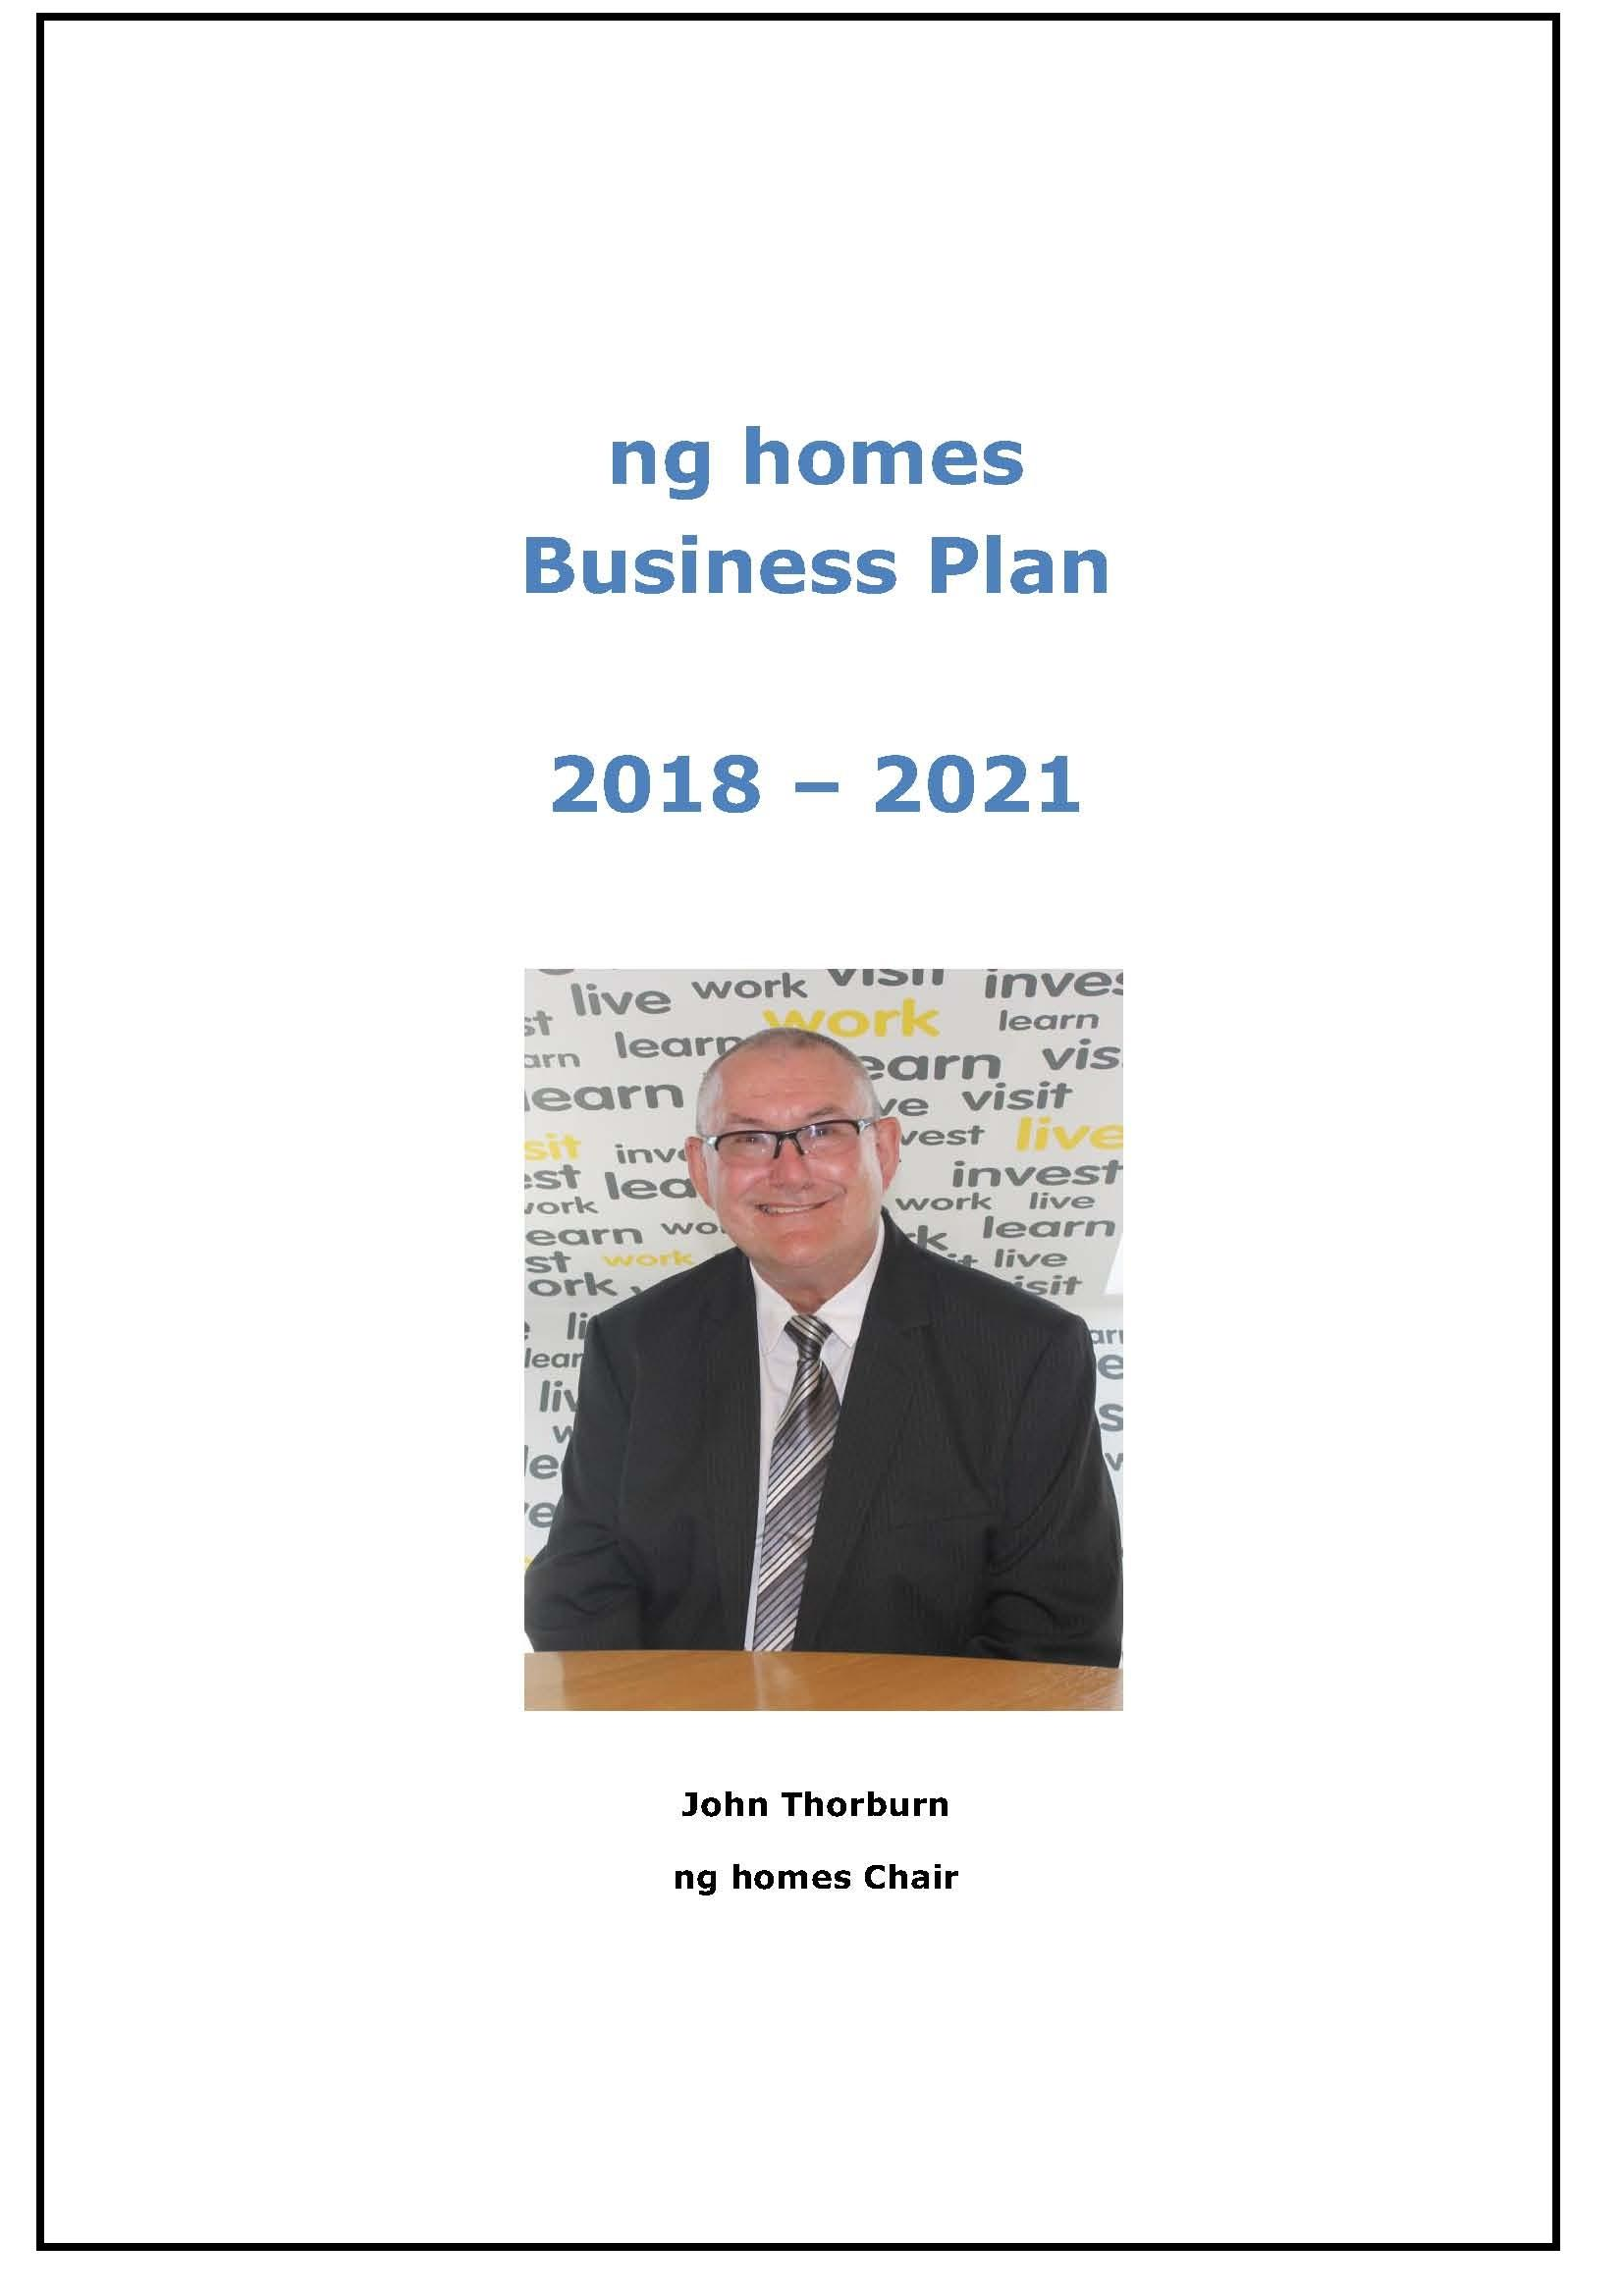 2018-2021 Business Plan cover